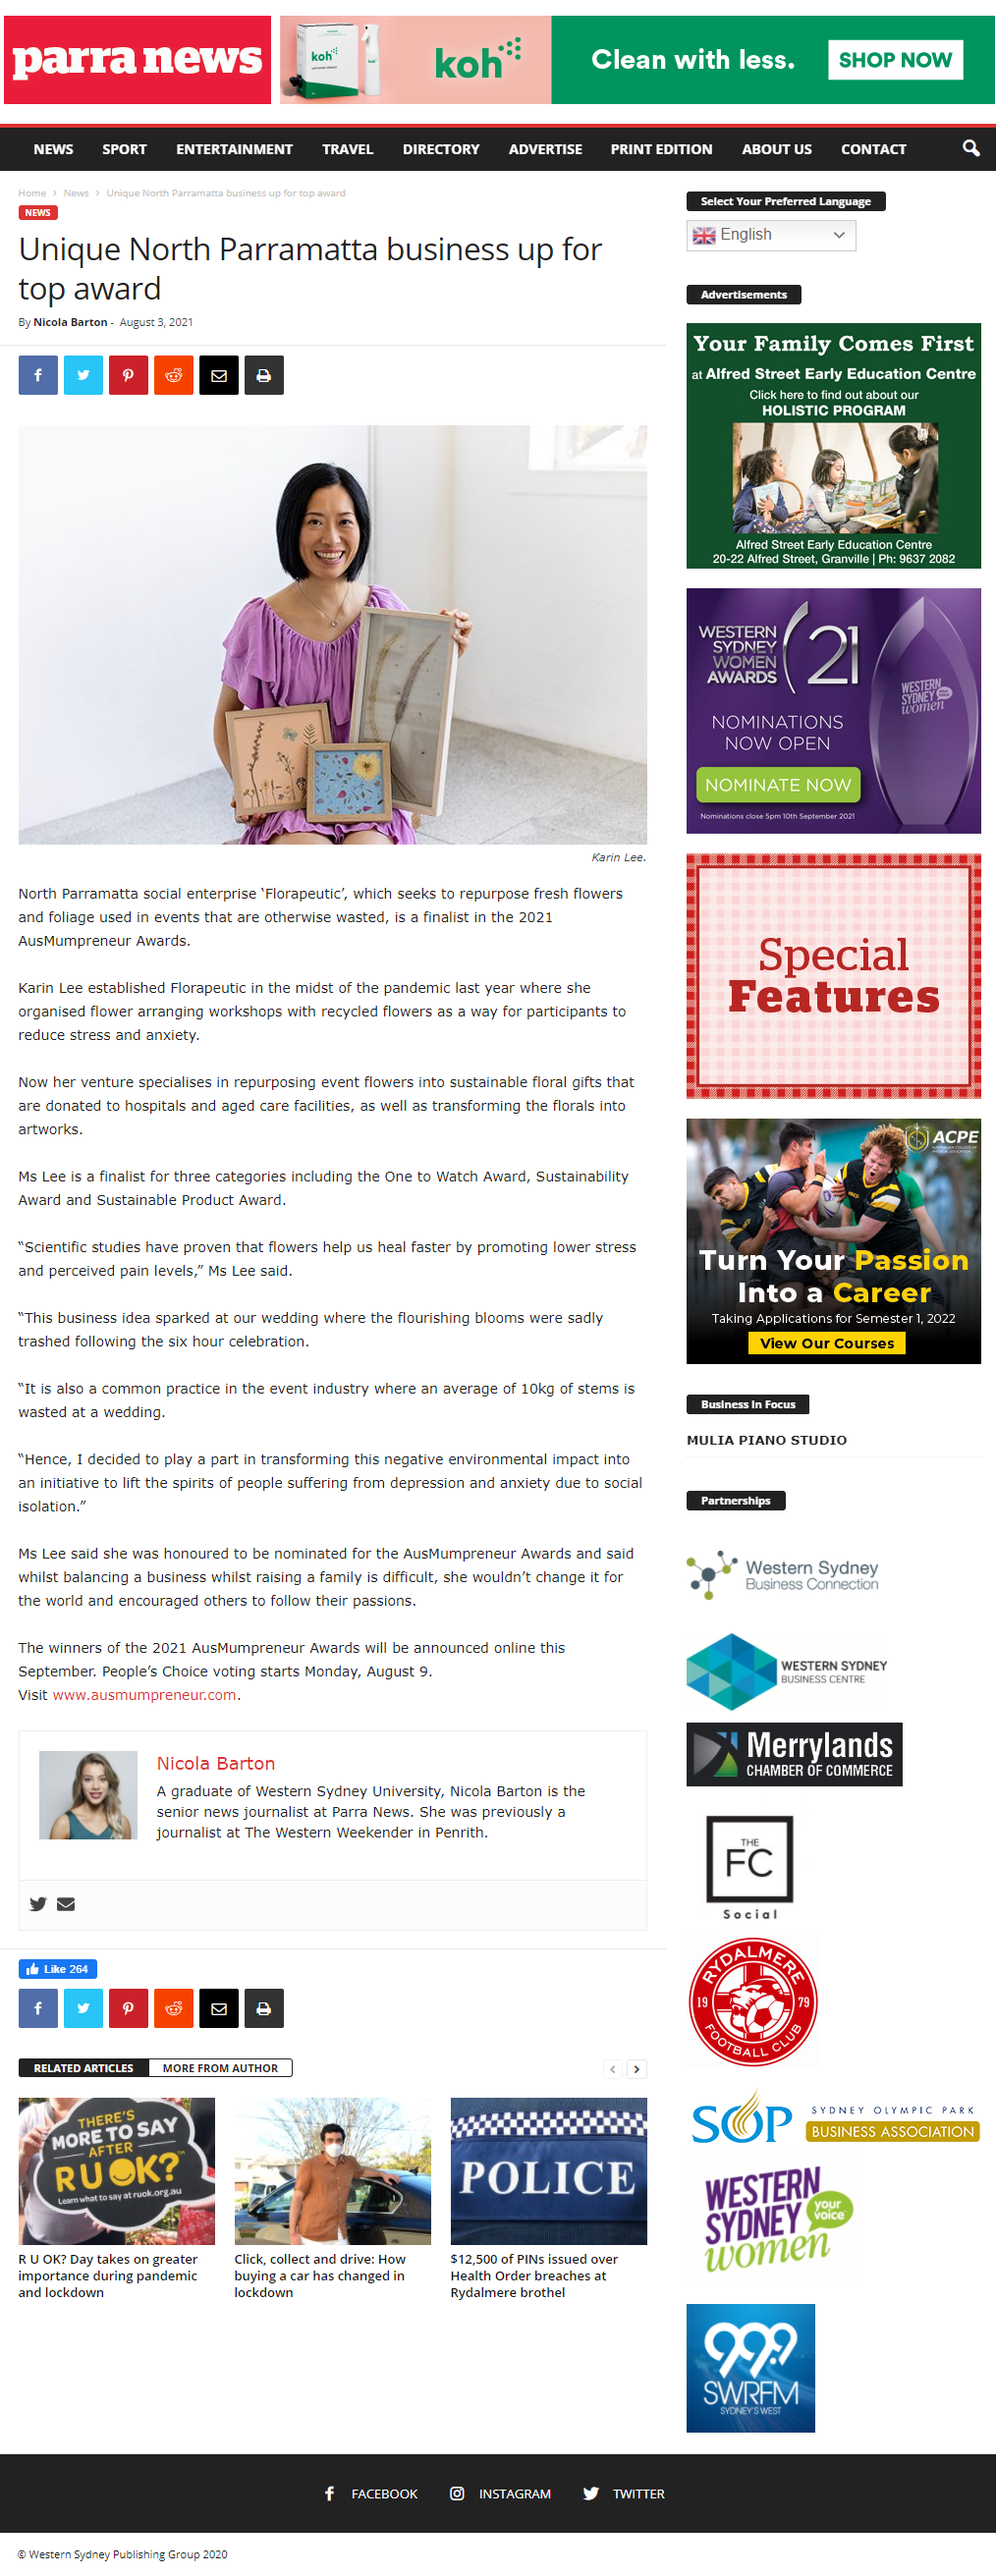 Karin and Florapeutic were featured in Parra News 3 Aug 2021.